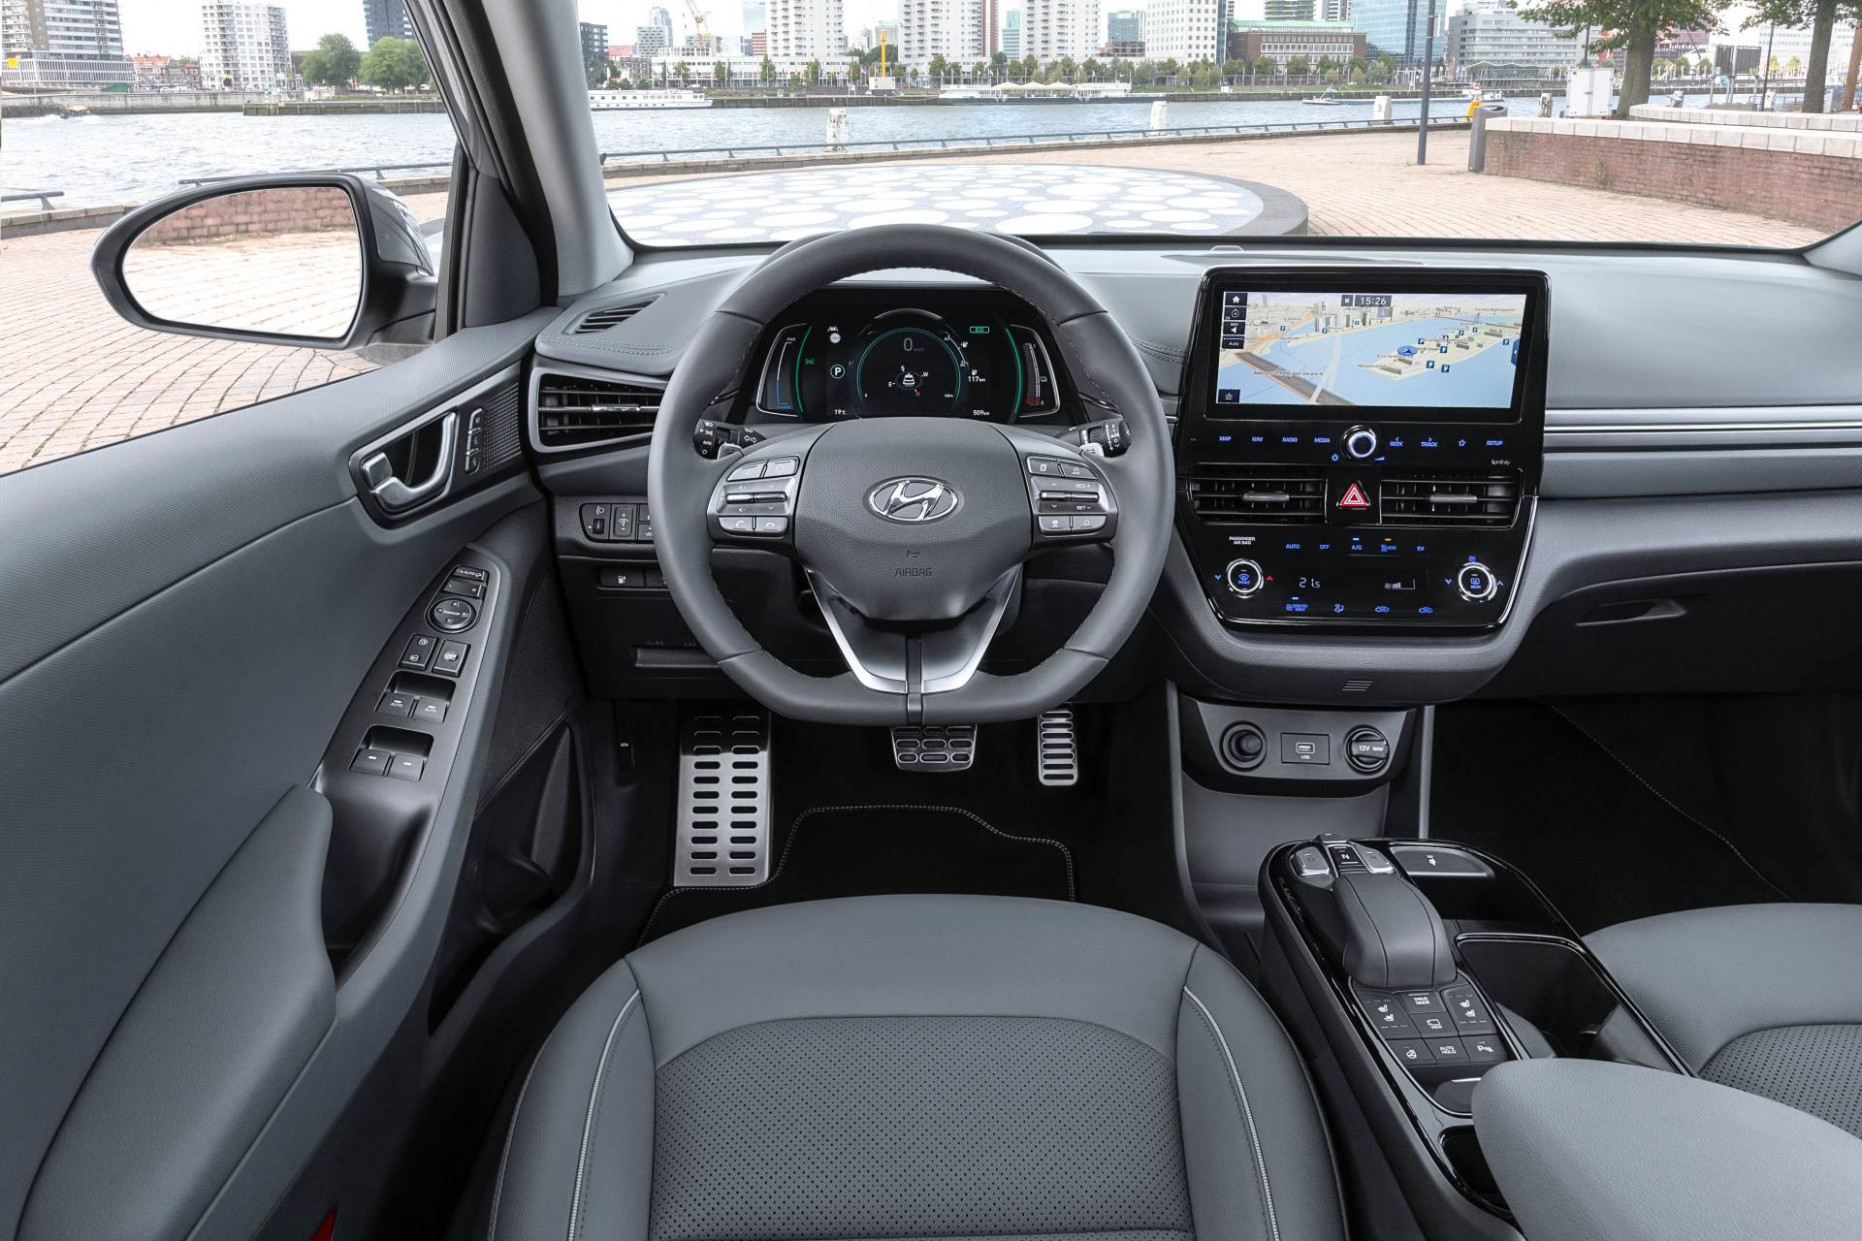 Hyundai, Kia Facing Class-Action Lawsuit In Canada Over Scheduled ..